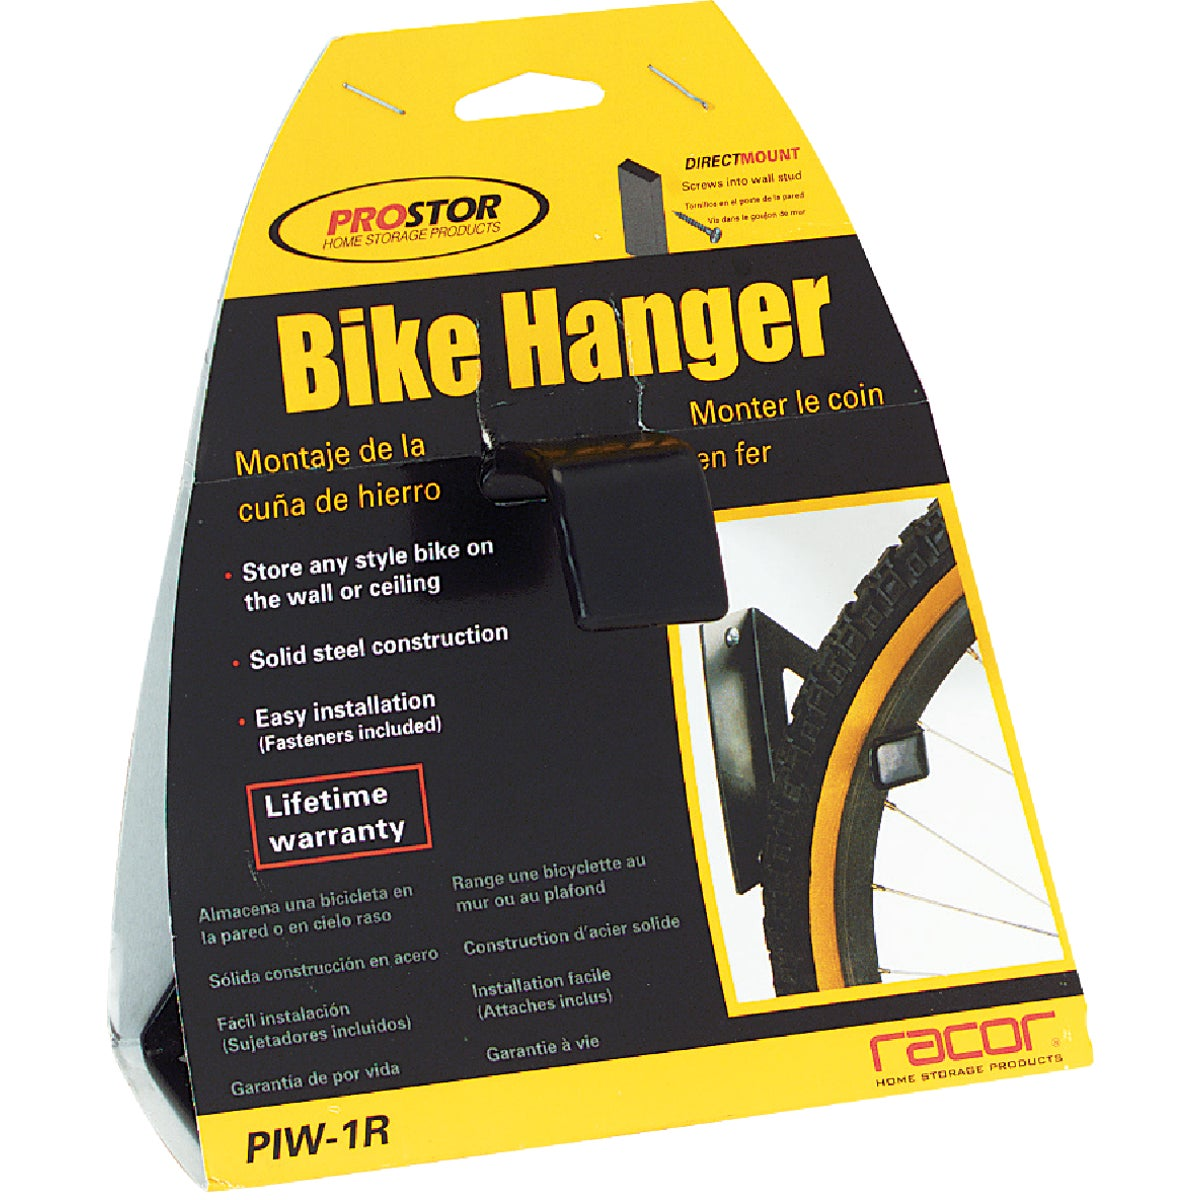 BLK BIKE HANGER - PIW1R by Itw Brands